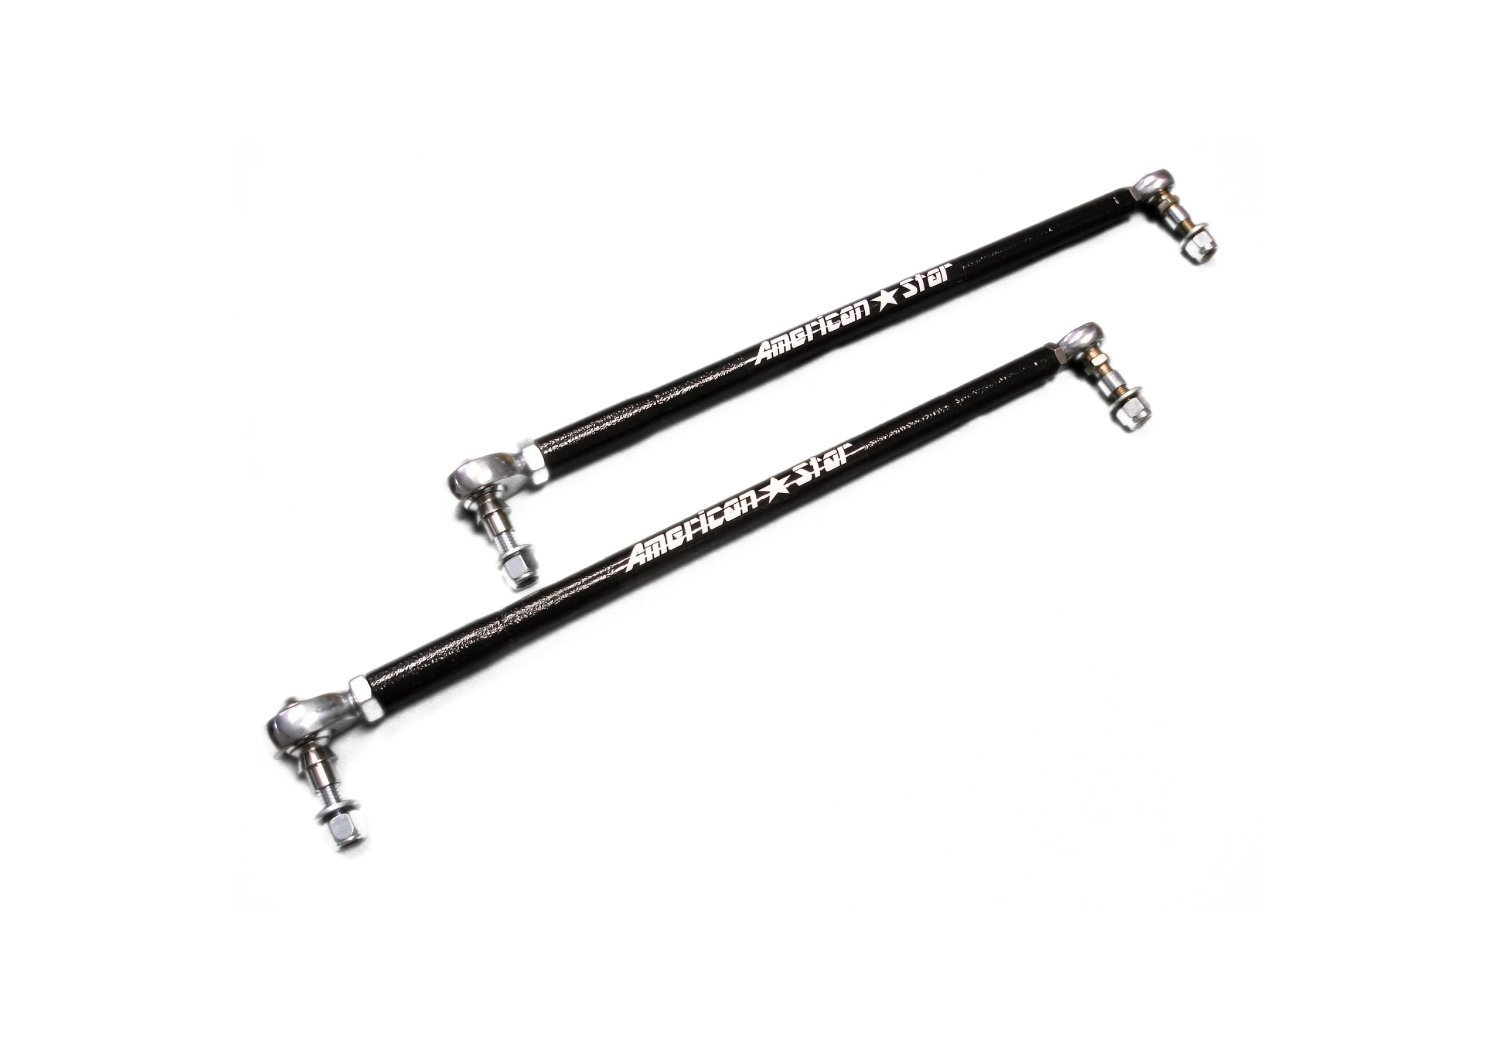 American Star PRO MOLY Tie Rods and Ends for Kawasaki Brute Force 650i, 750i & KFX700 by American Star Manufacturing